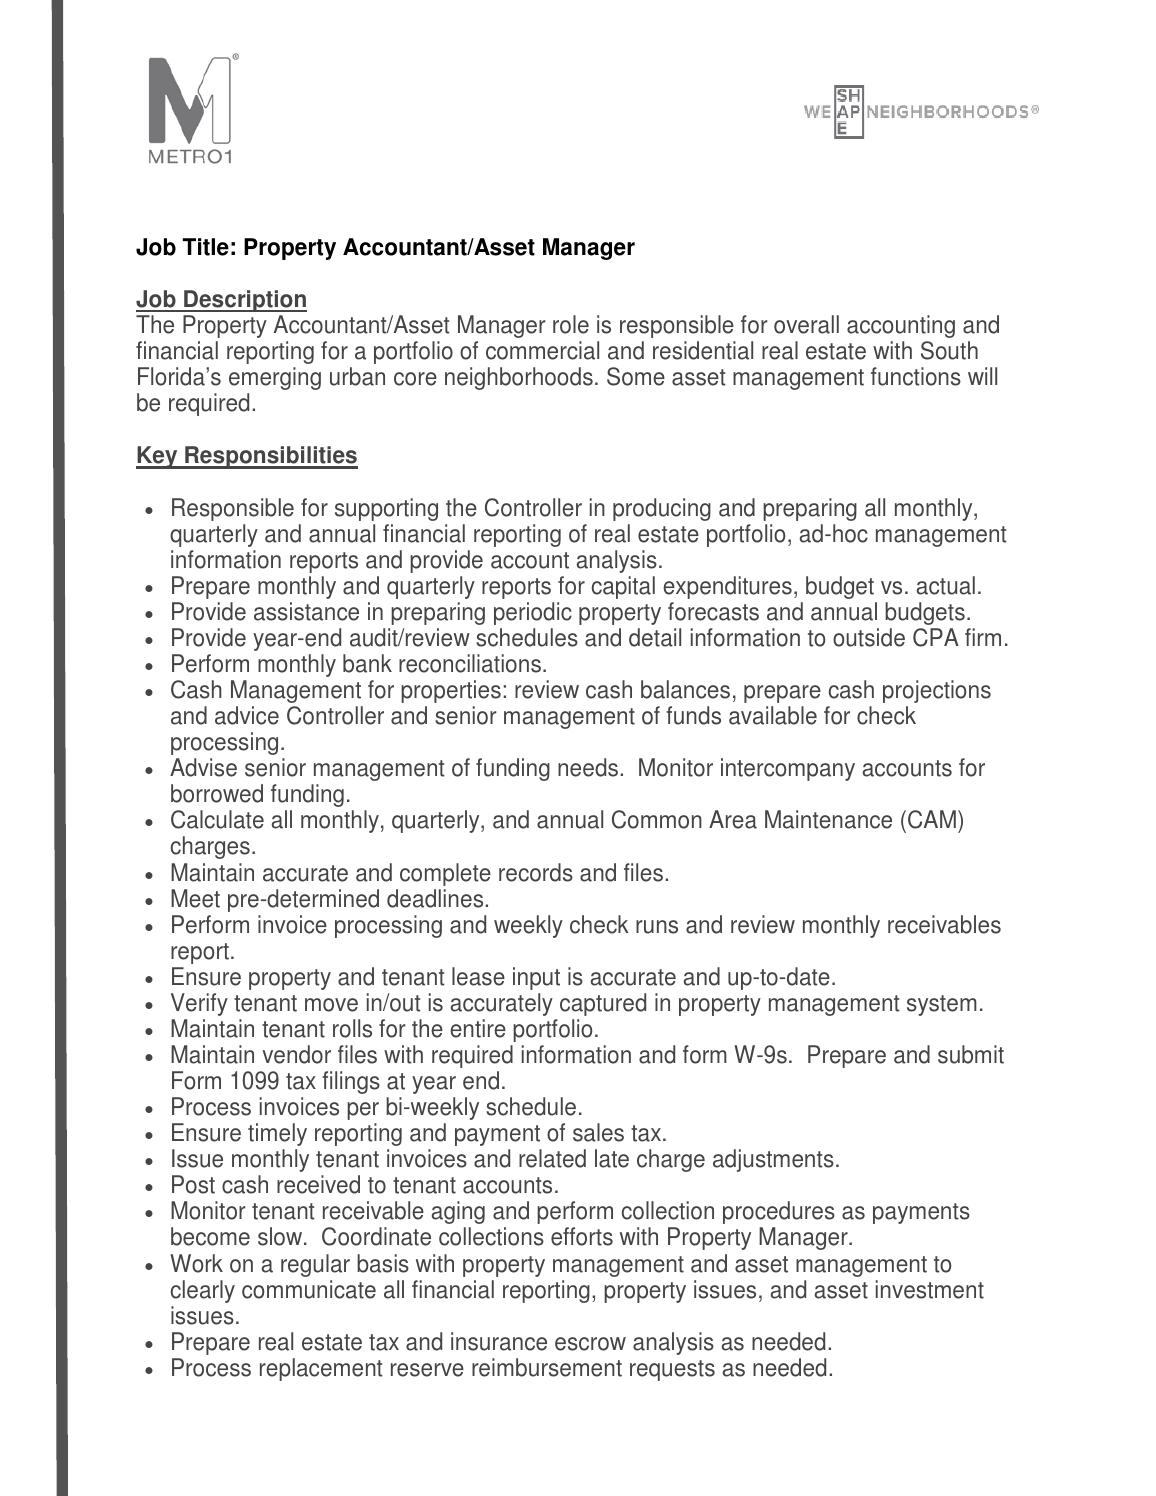 Ad Hoc Property Management Review